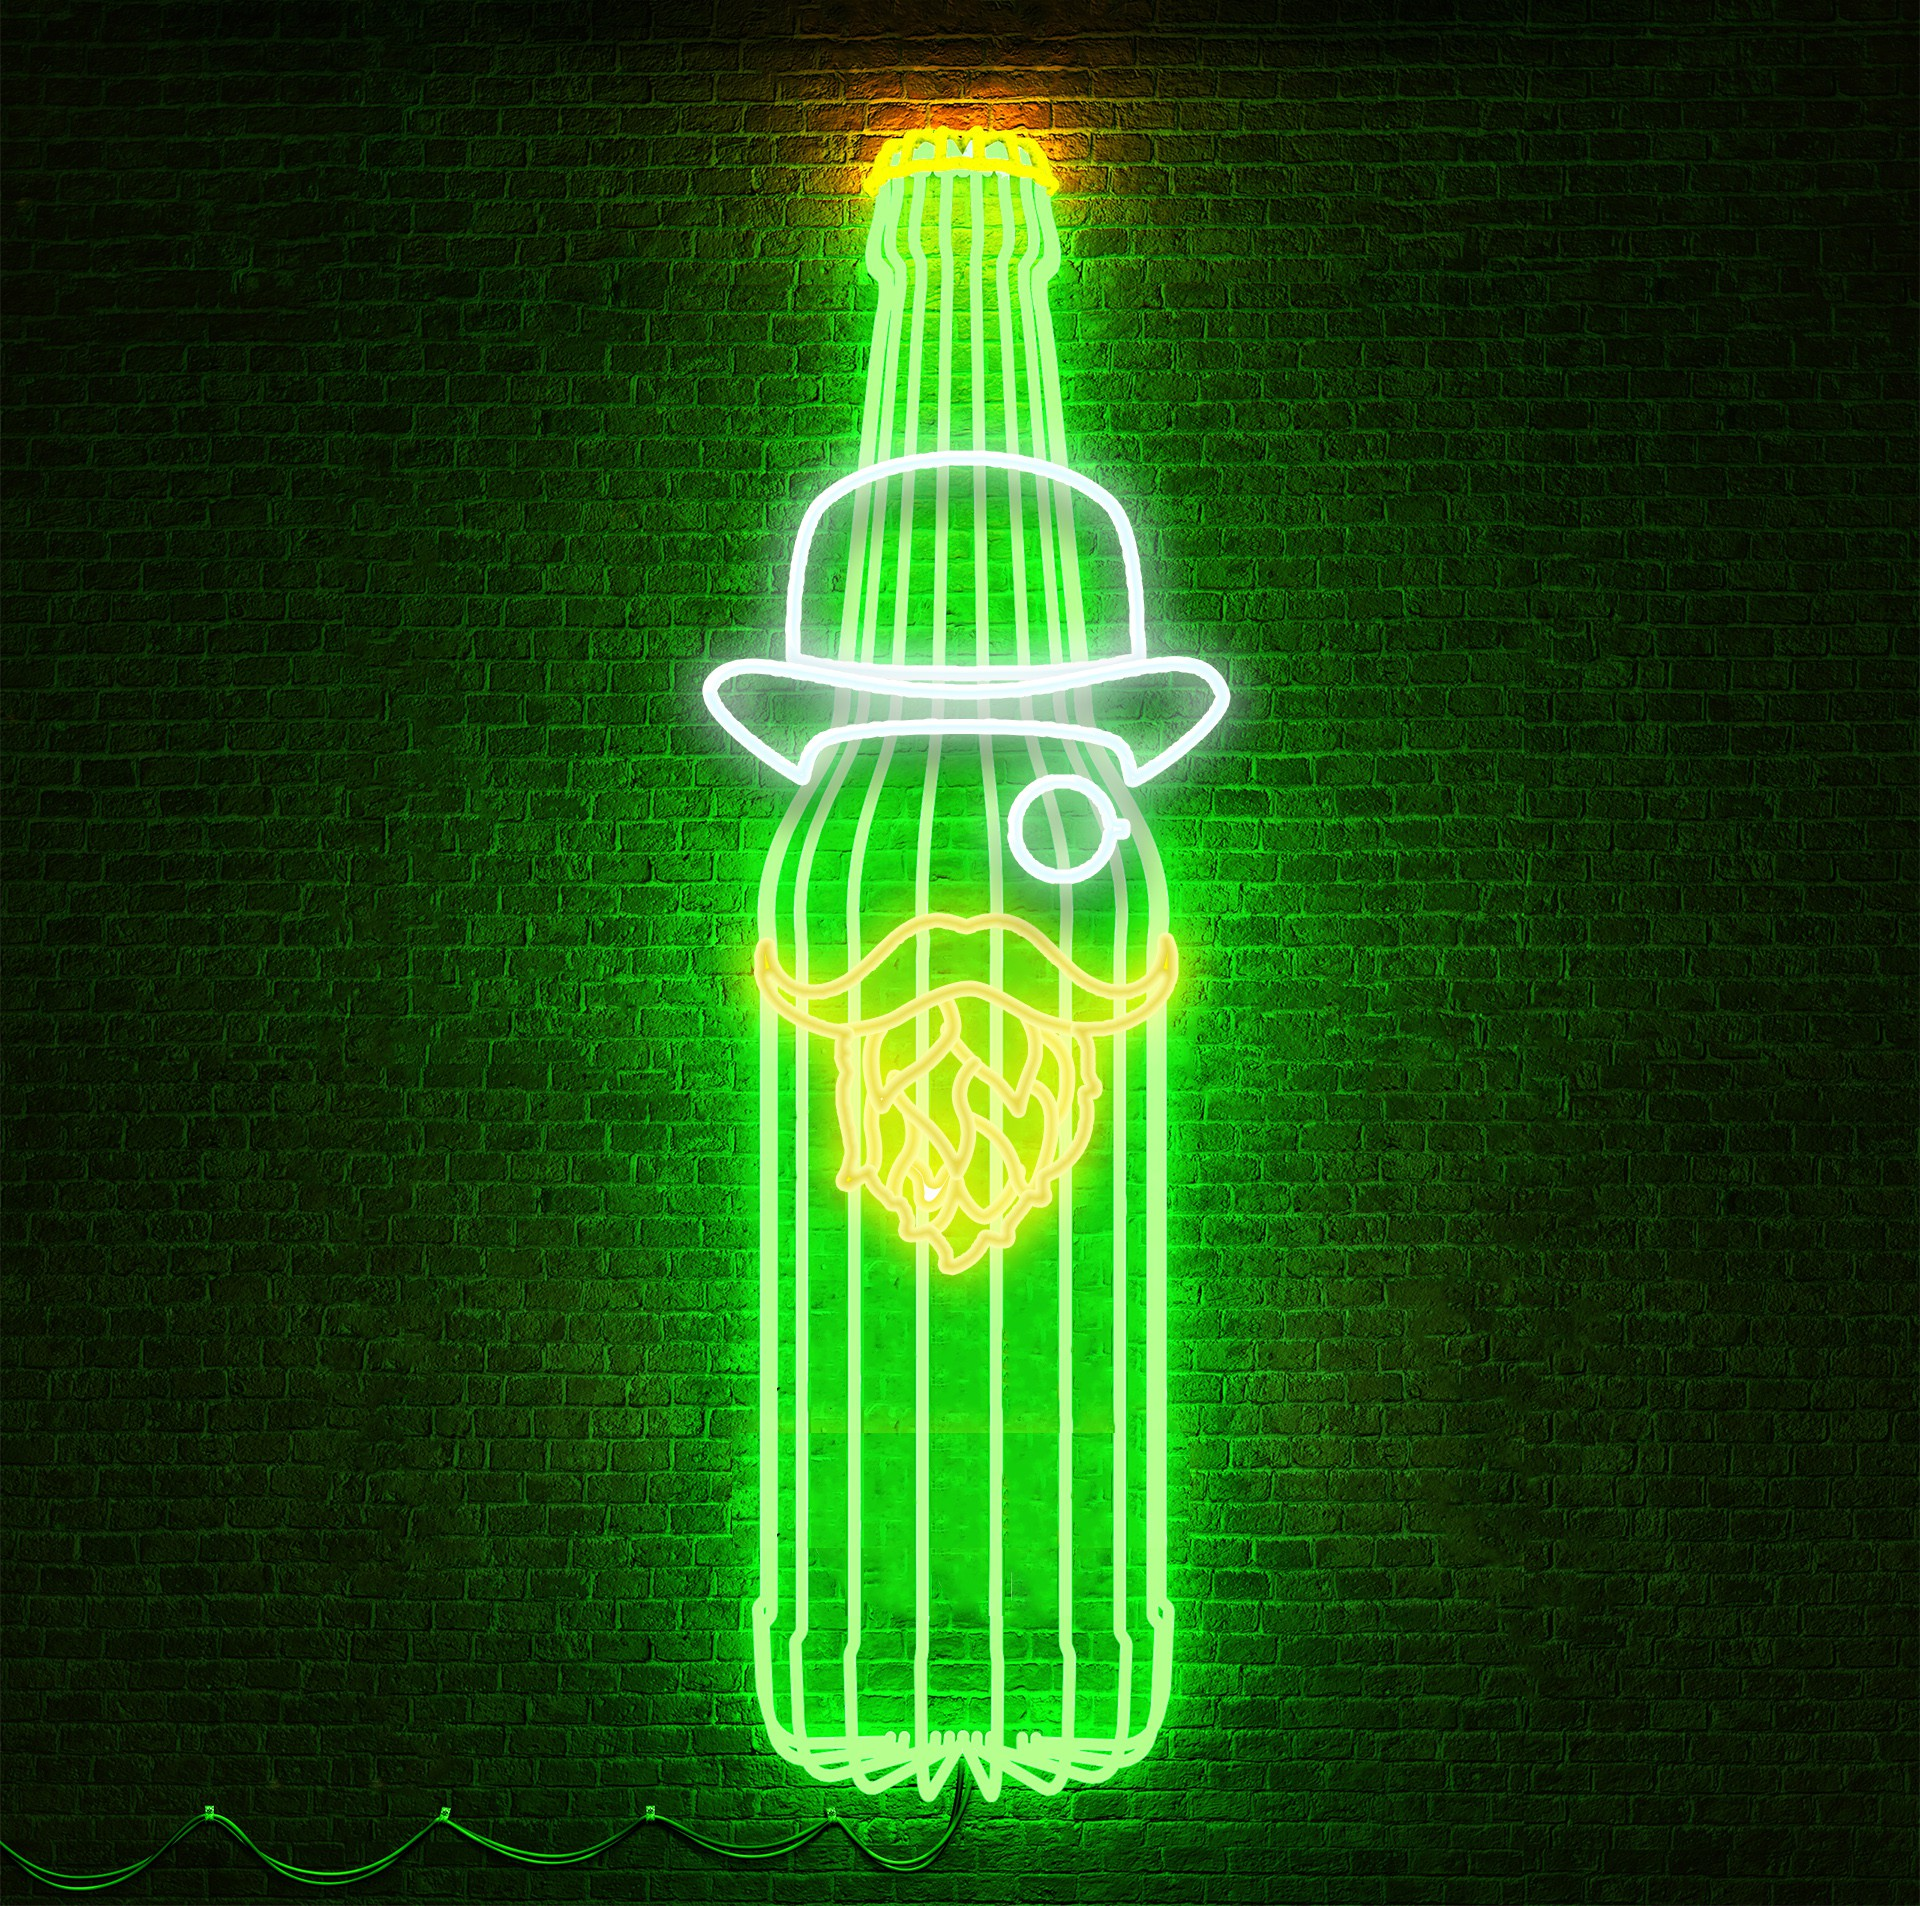 Design a brand identity lighting sign for a bar company, 3D would be nice to see it.